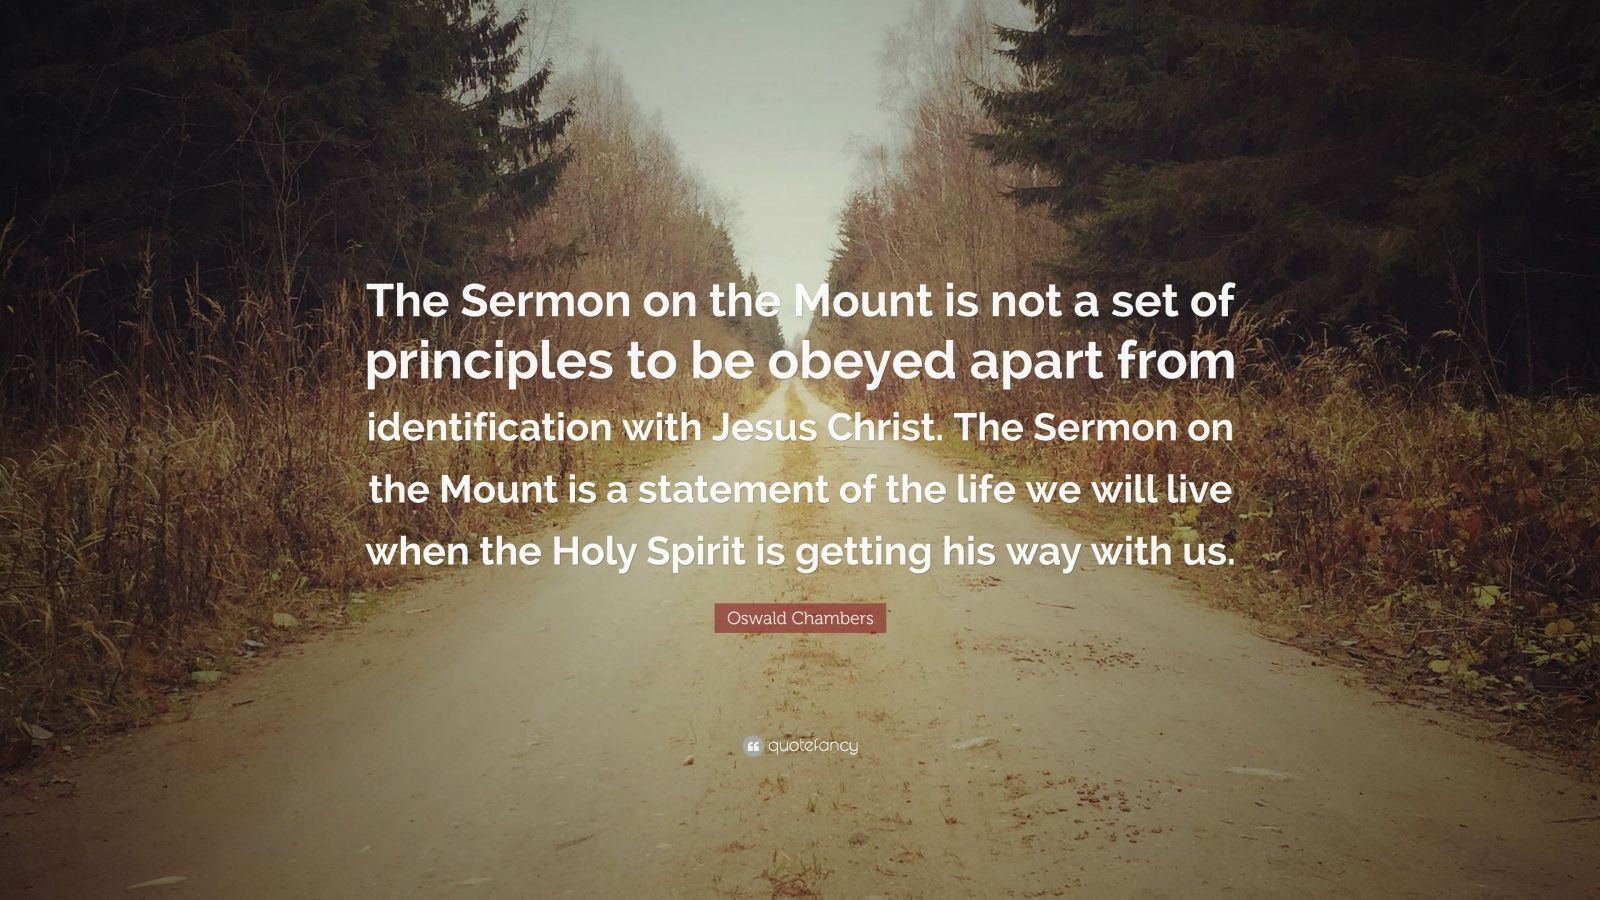 "Oswald Chambers Quote: ""The Sermon on the Mount is not a set of principles to be obeyed apart from identification with Jesus Christ. The Sermon on the Mount is a statement of the life we will live when the Holy Spirit is getting his way with us."""